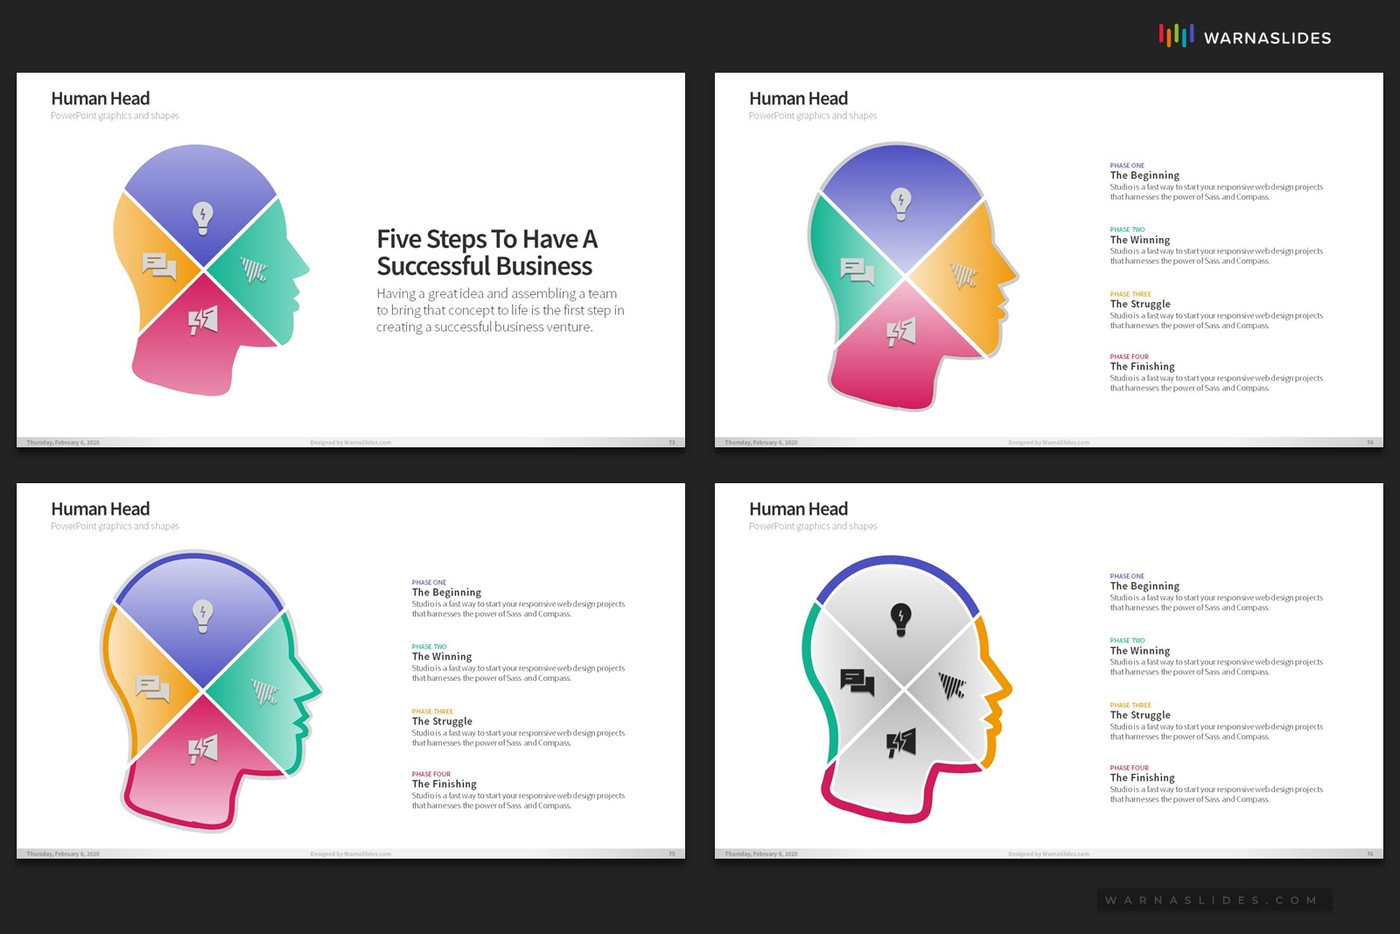 Human-Head-Ideas-Brainstorm-PowerPoint-Template-for-Business-Pitch-Deck-Professional-Creative-PowerPoint-Icons-015